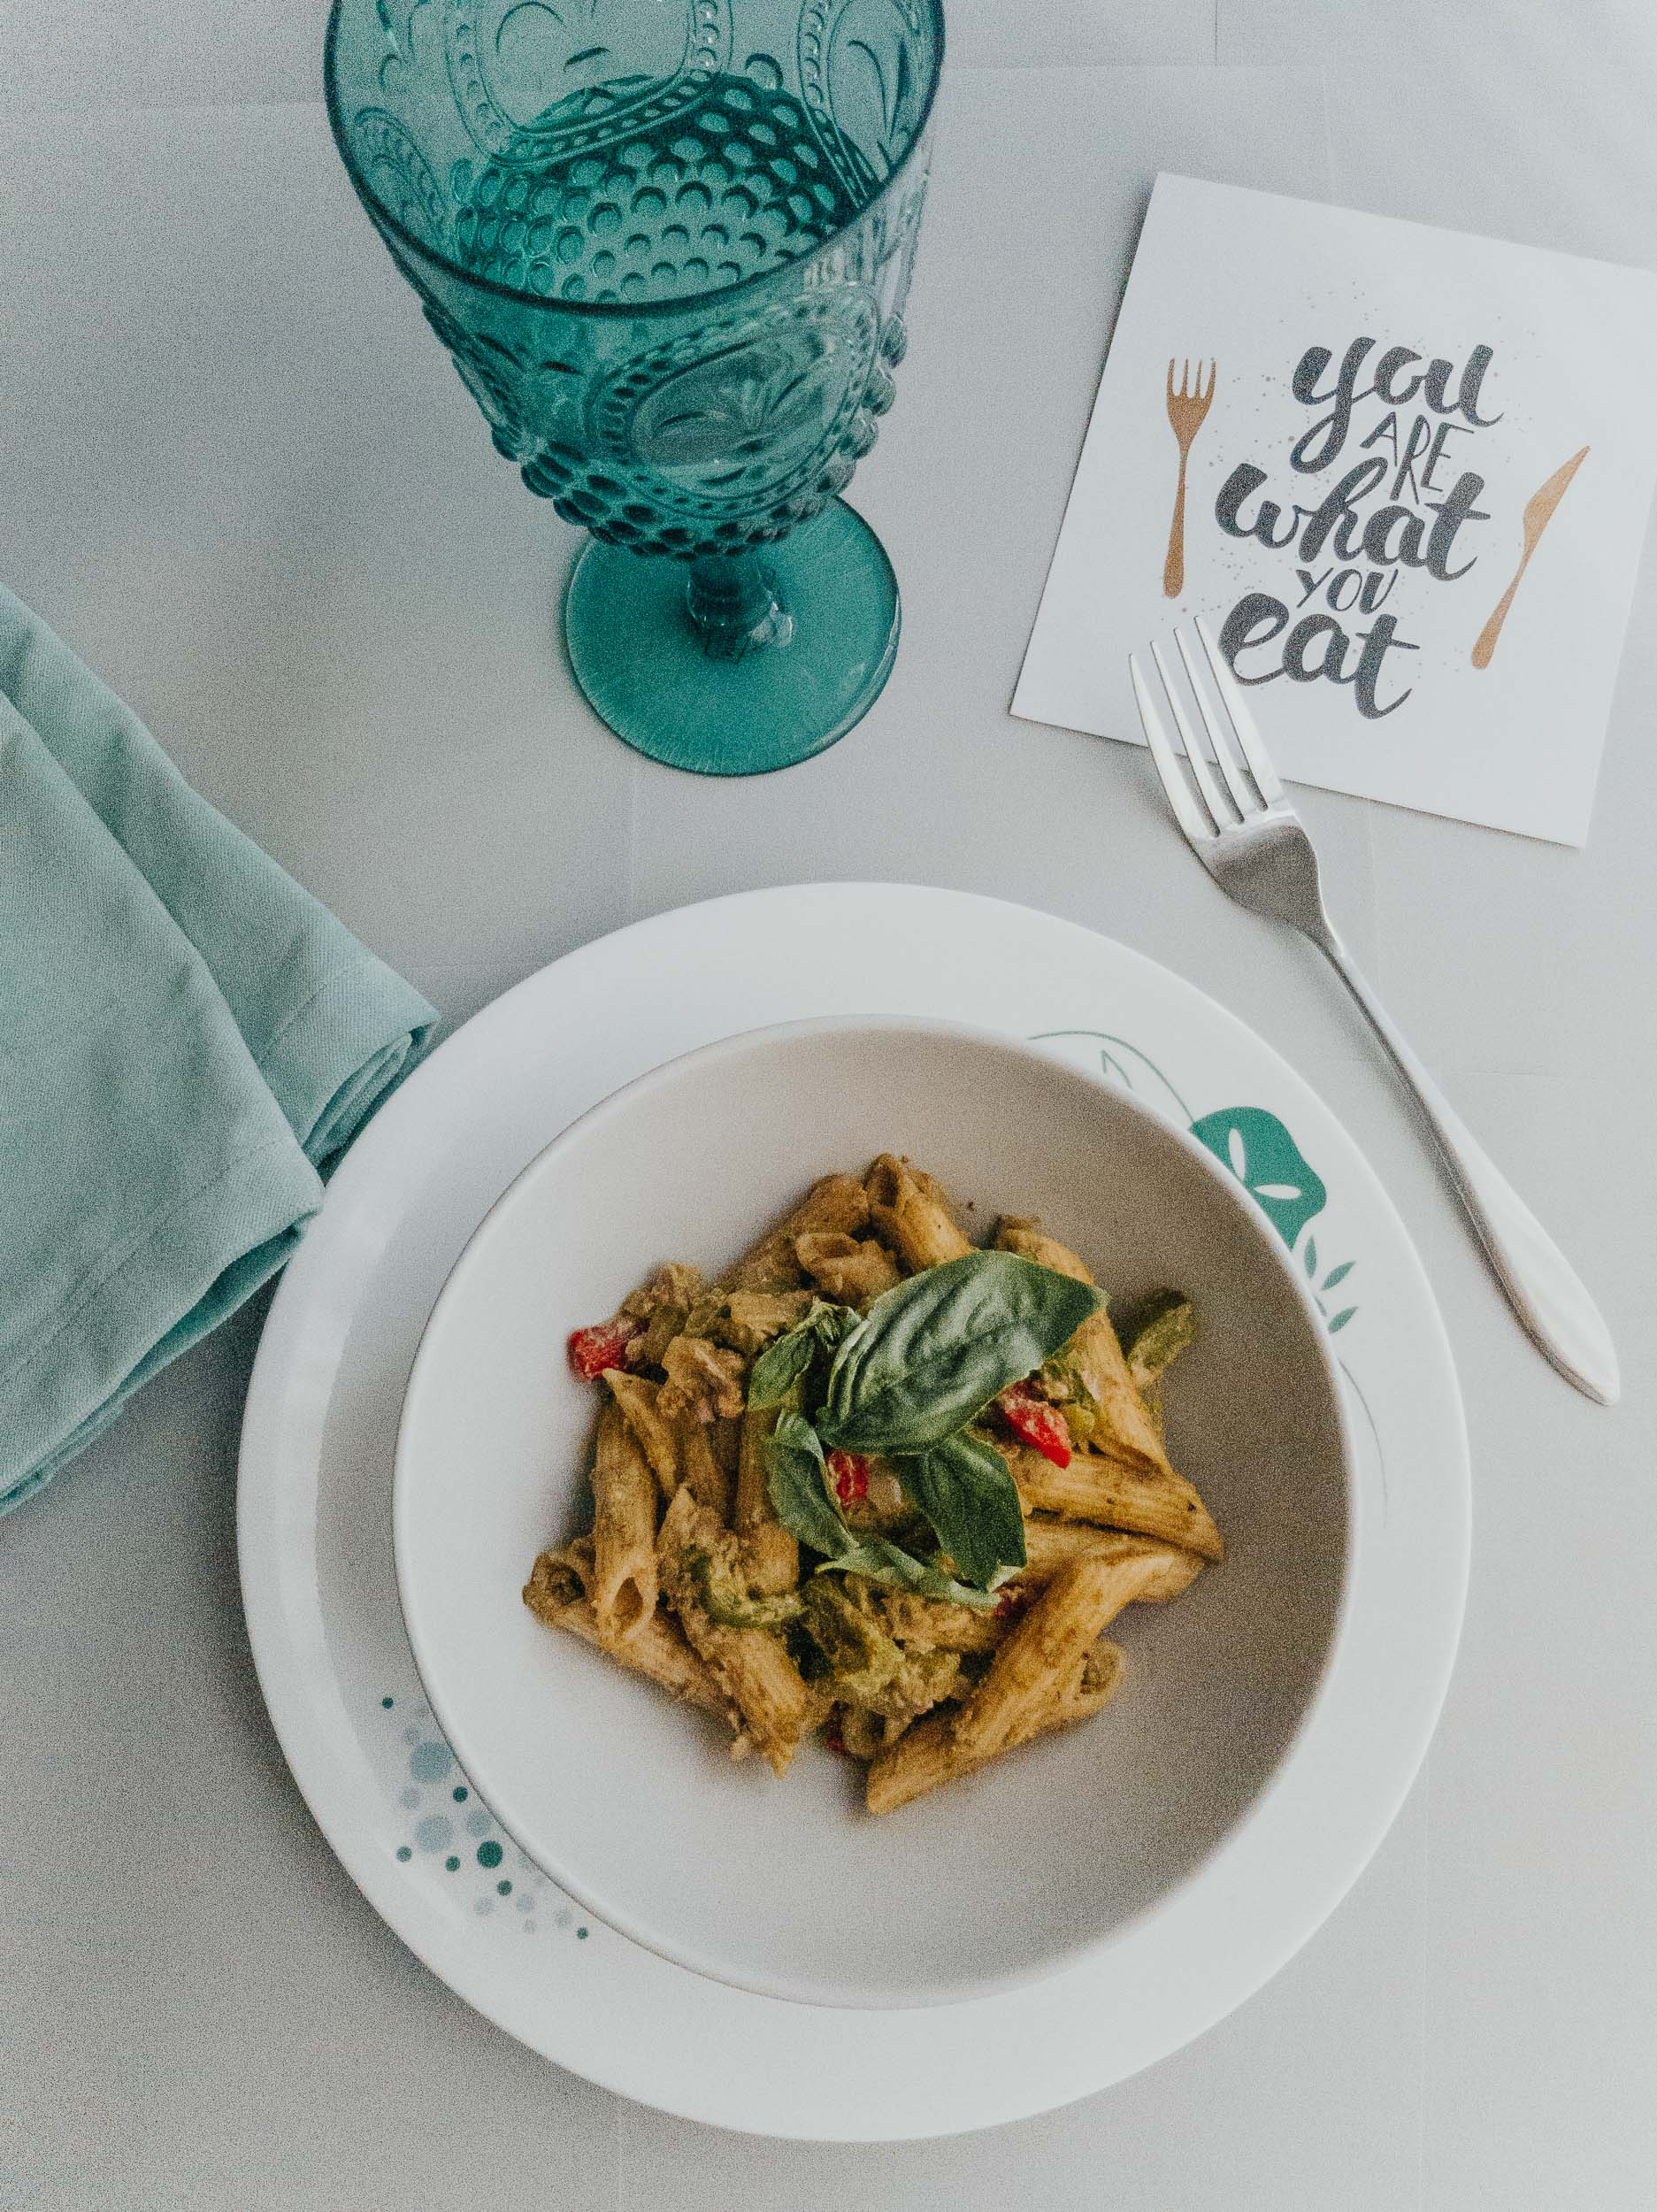 Healthy homemade penne pasta with avocado pesto and blue wine glass